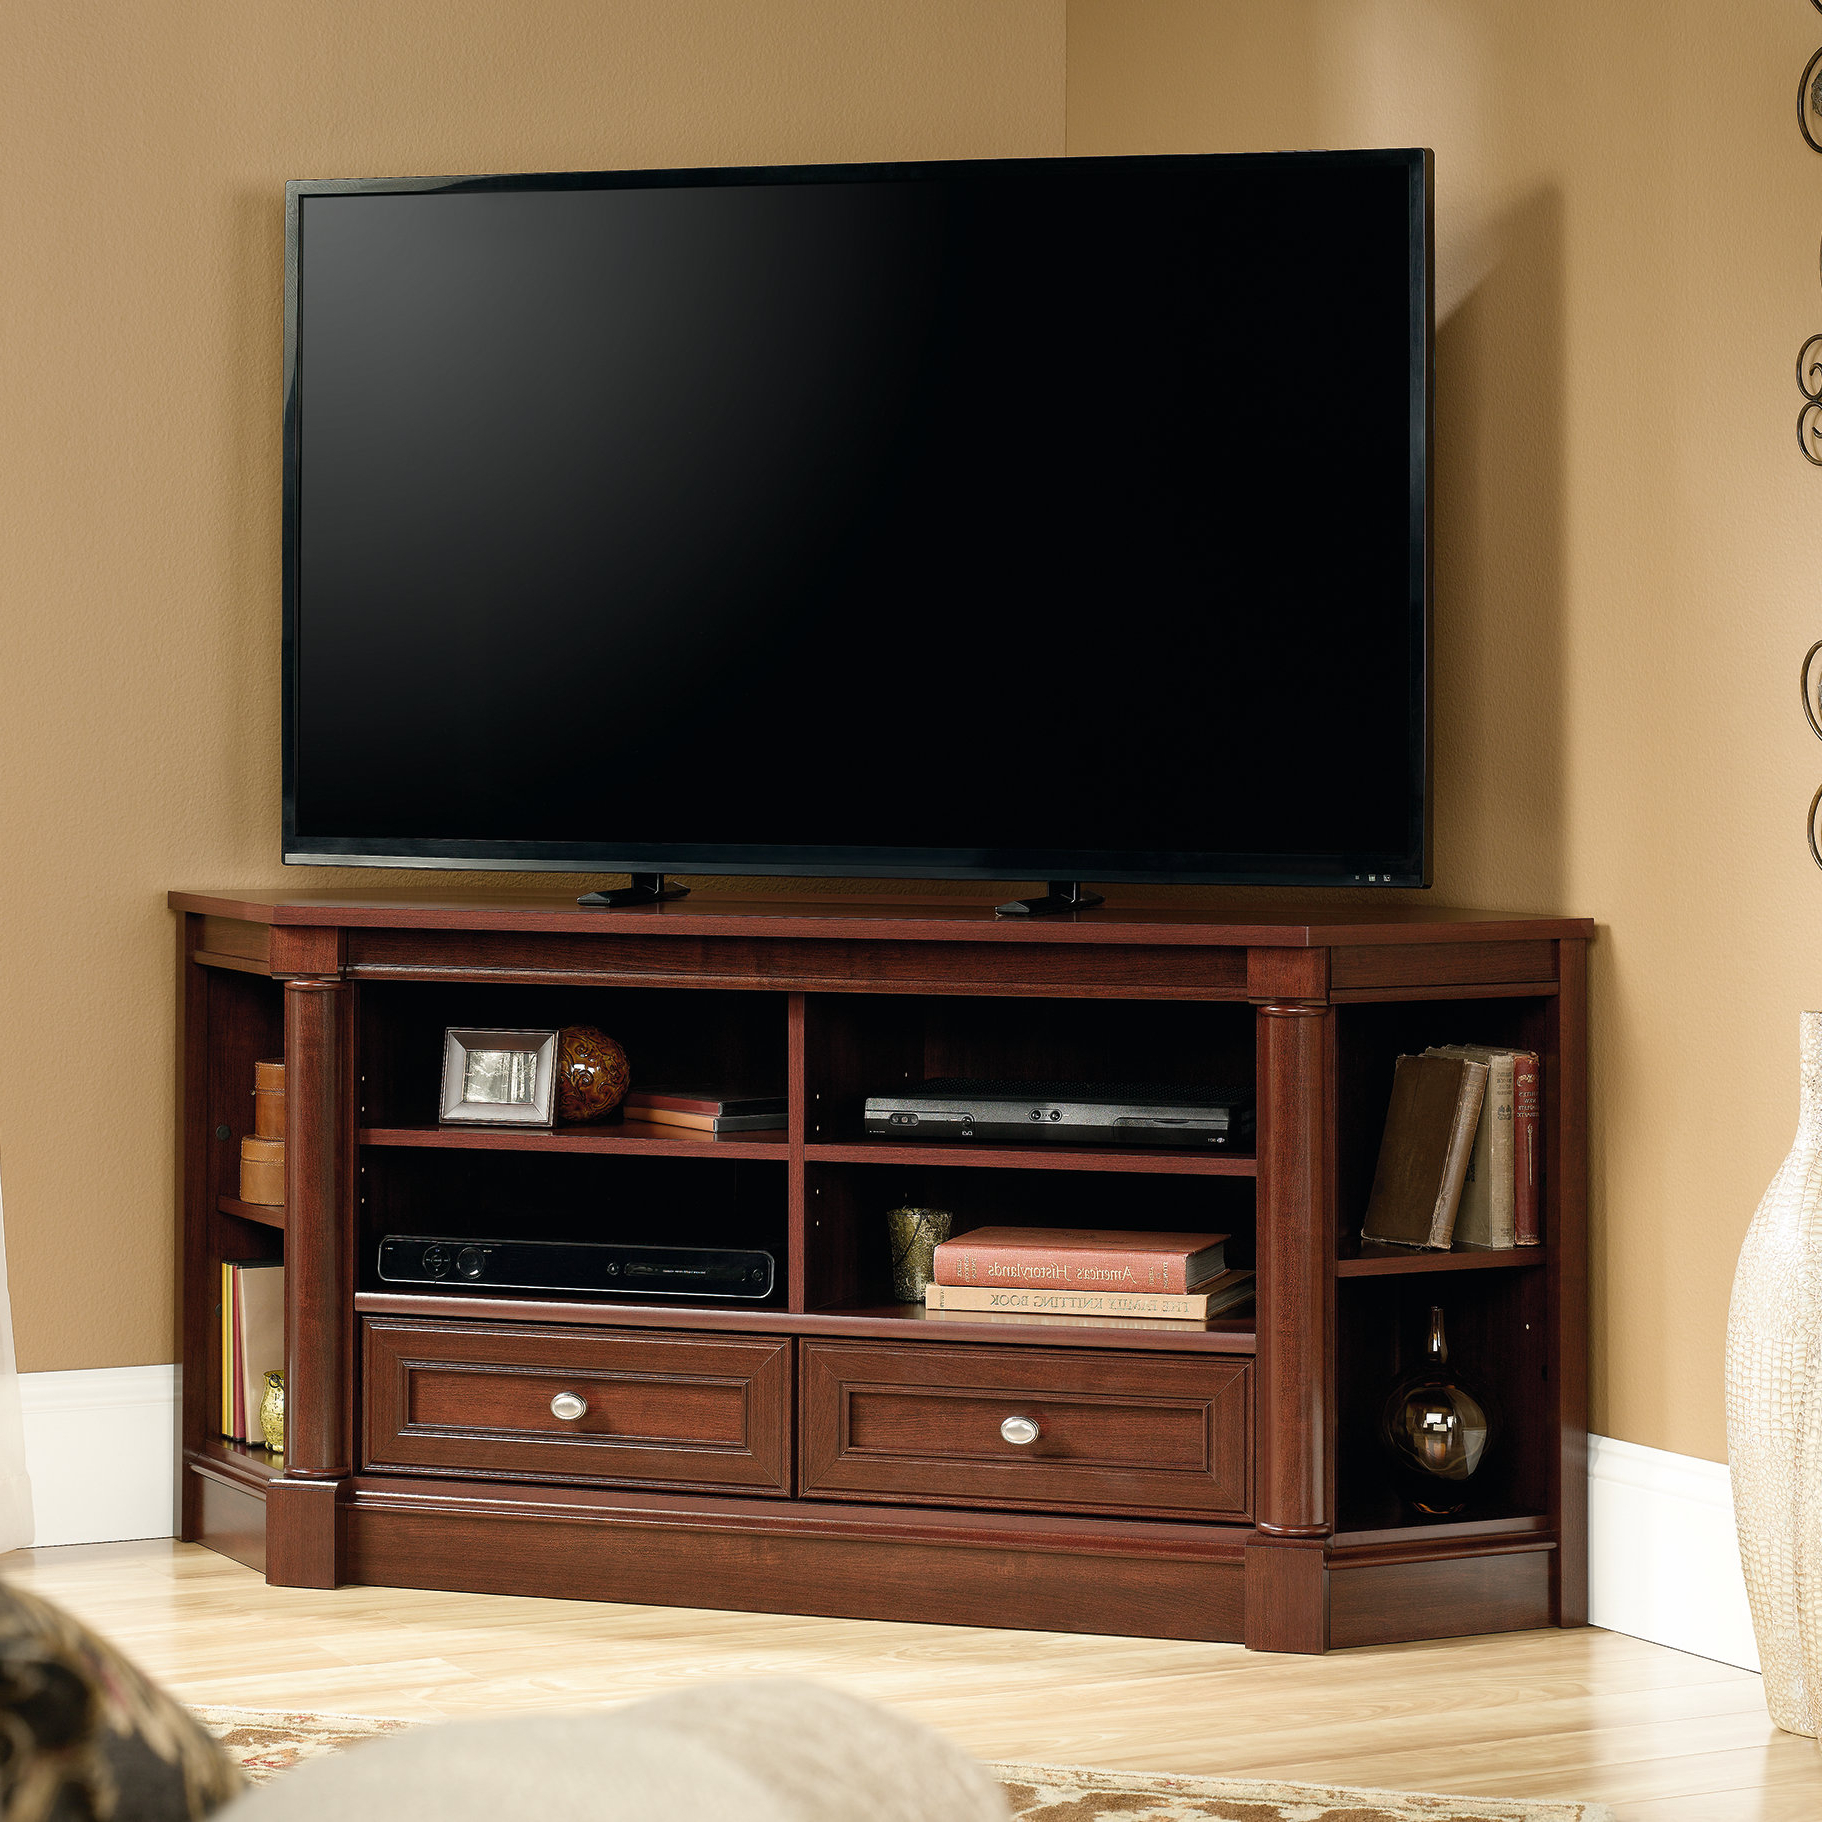 24 Inch Corner Tv Stands With Fashionable 55 In Corner Tv Stand (View 7 of 20)